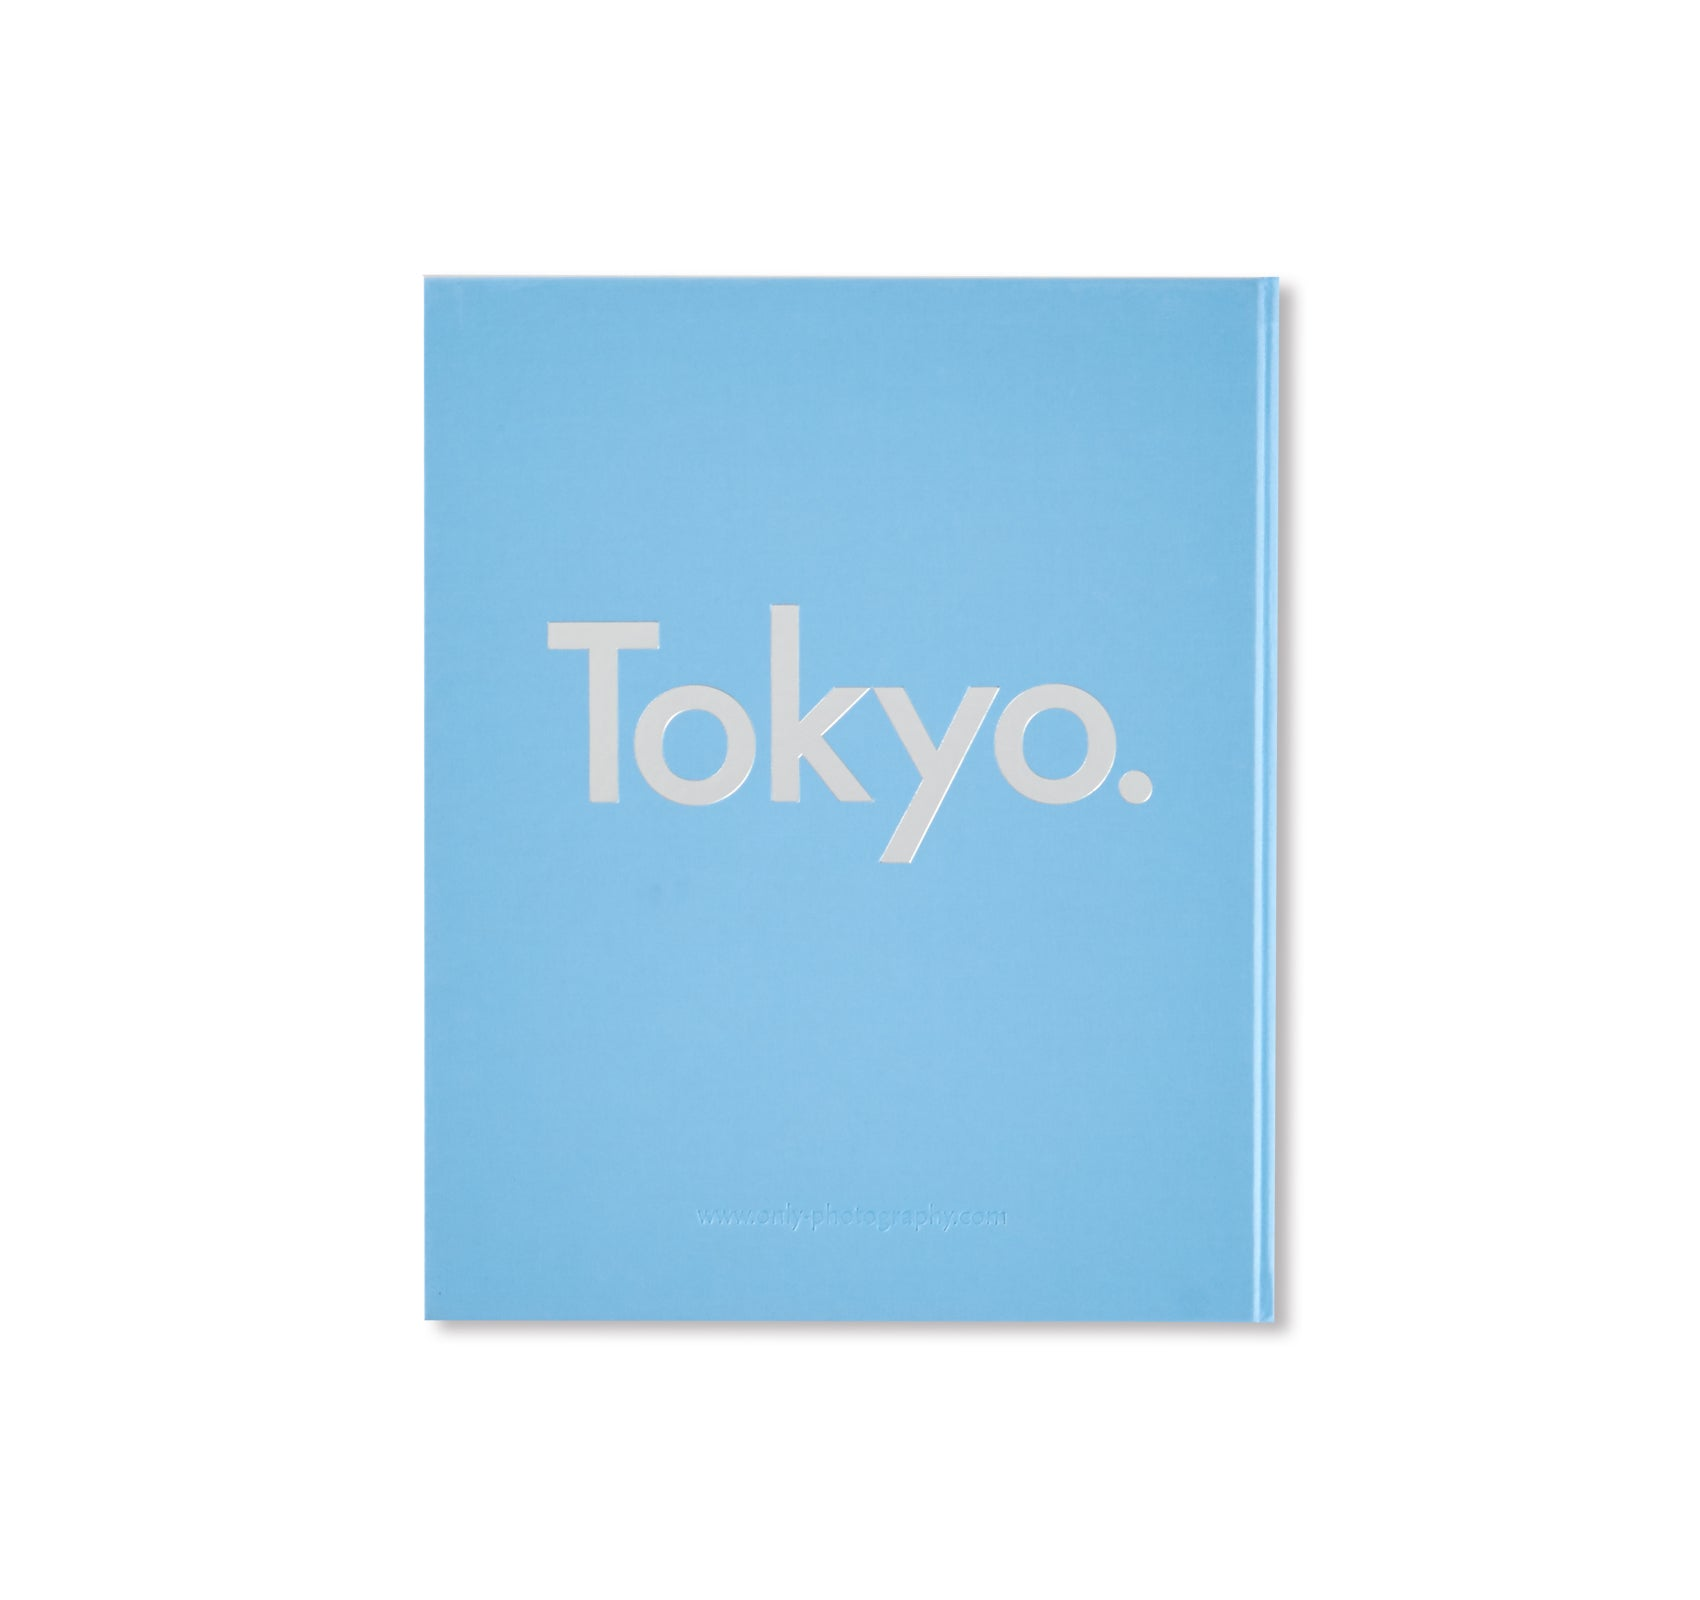 TOKYO by Gerry Johansson [SIGNED]